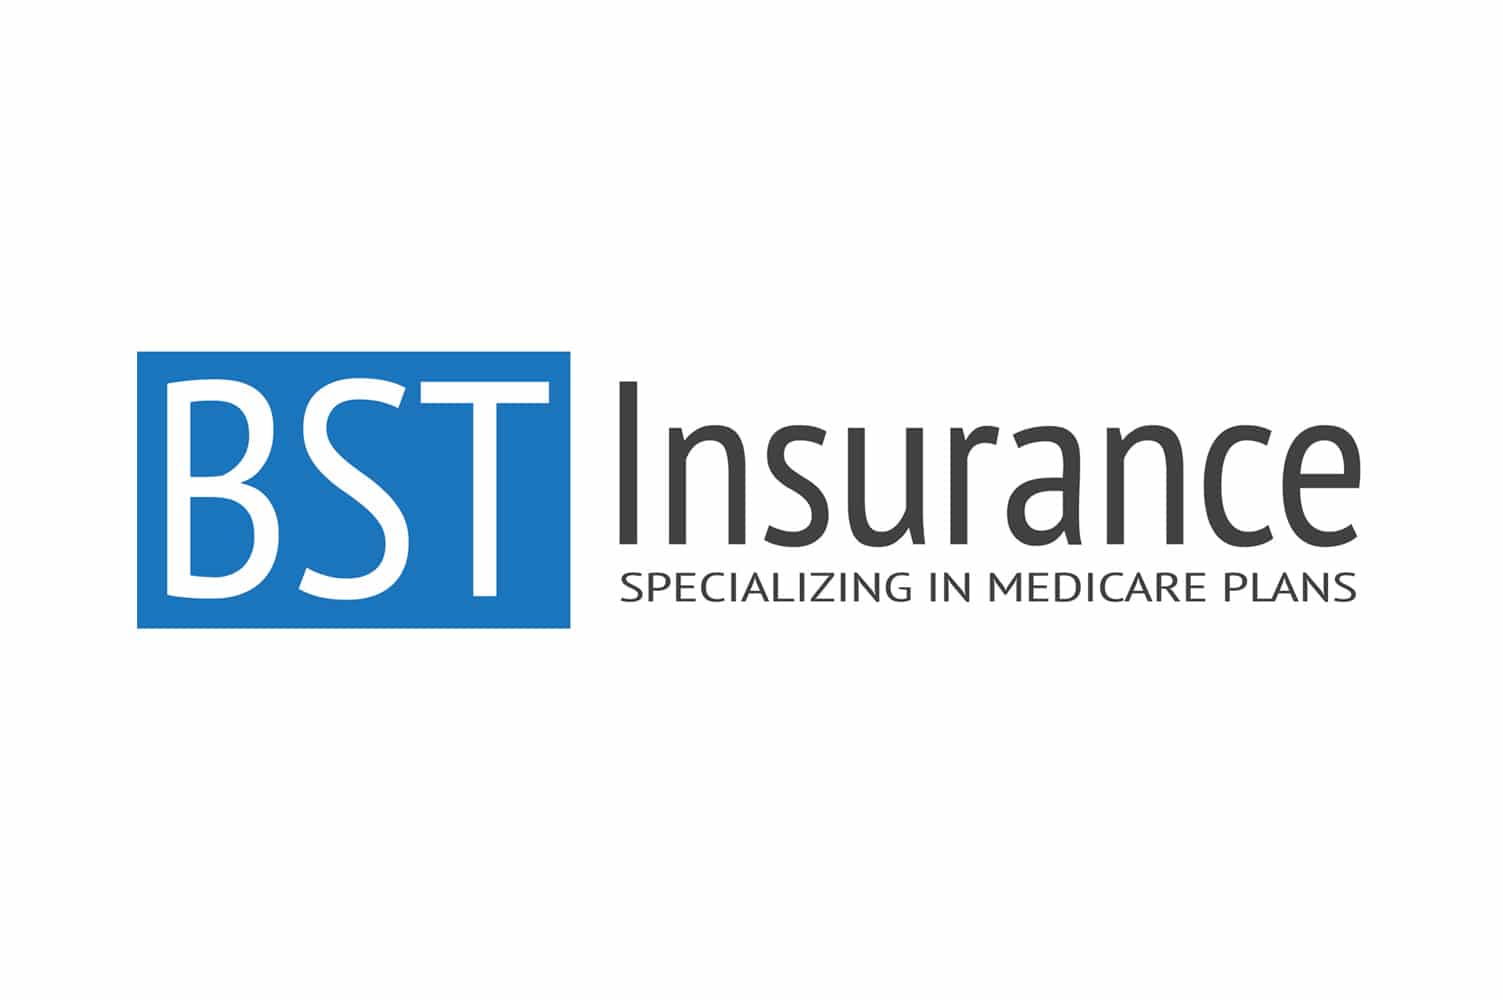 bst-insurance-logo-design